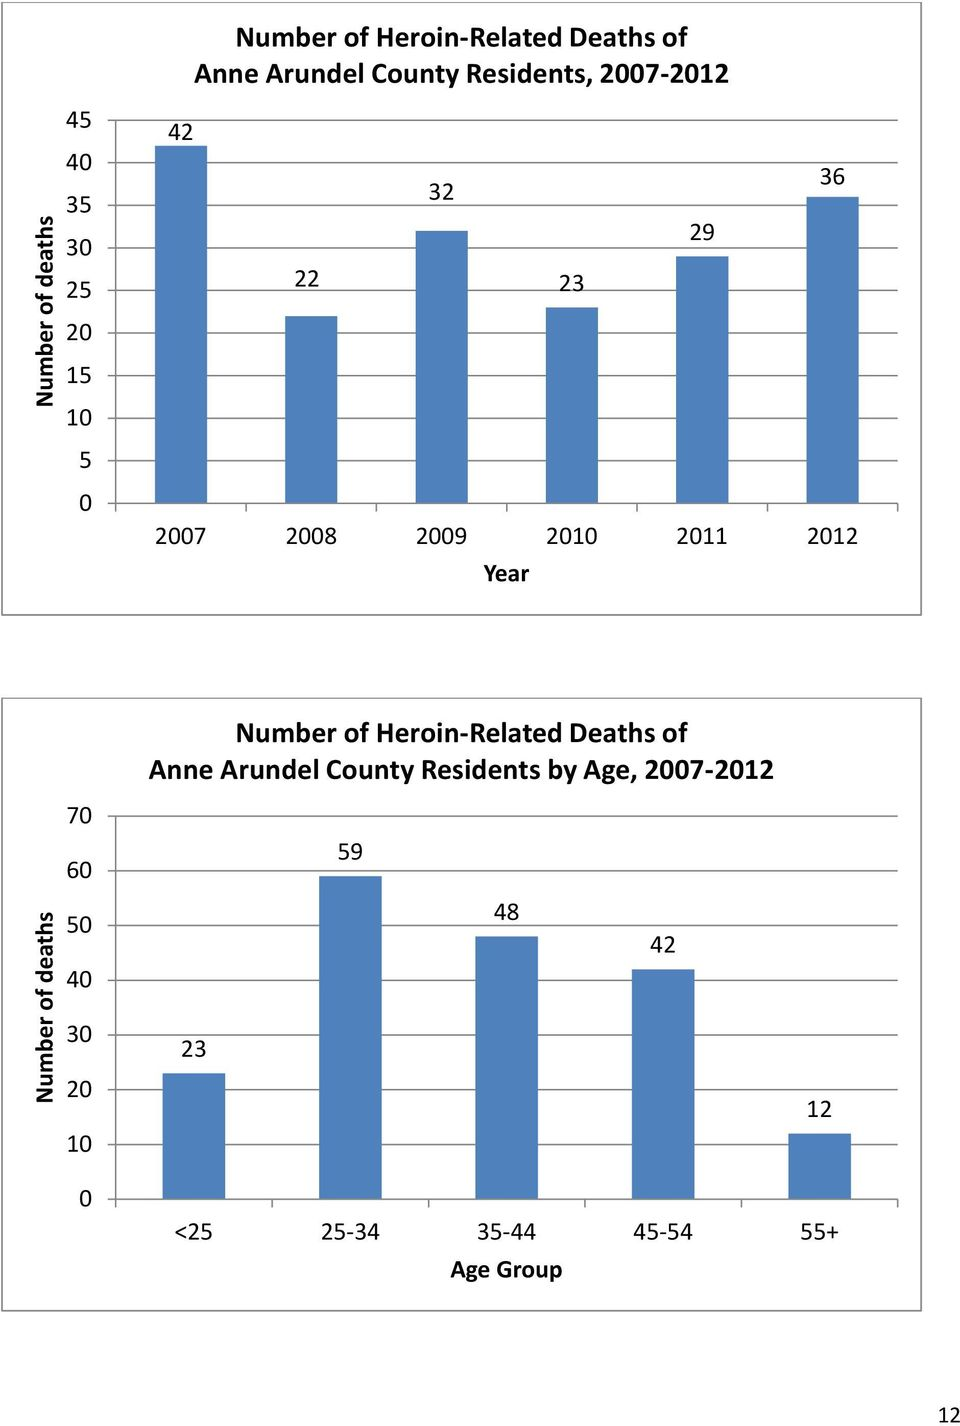 Number of Heroin-Related Deaths of Anne Arundel County Residents by